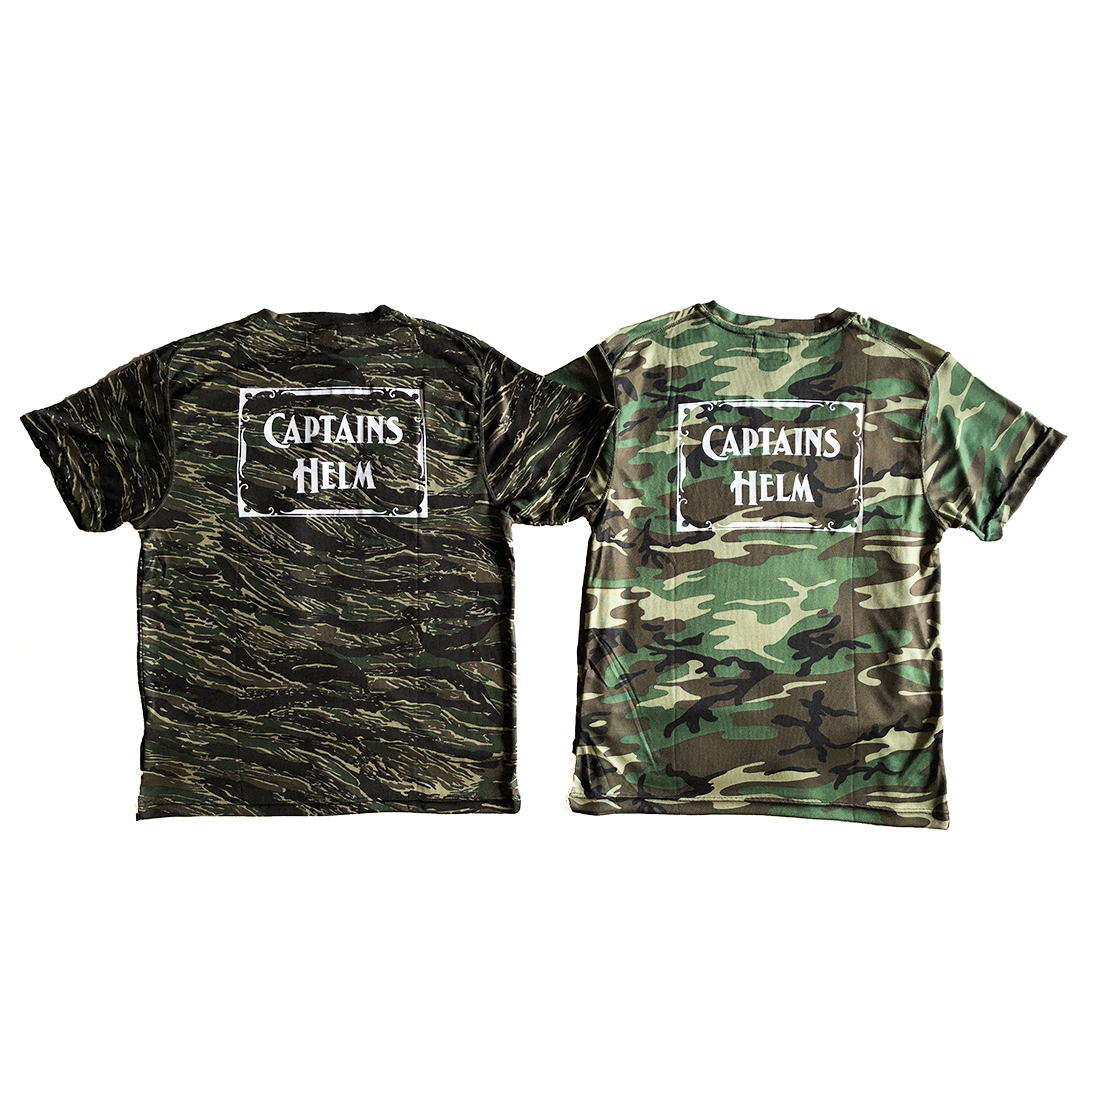 CAPTAINS HELM #Sunguard rash Camo Tee